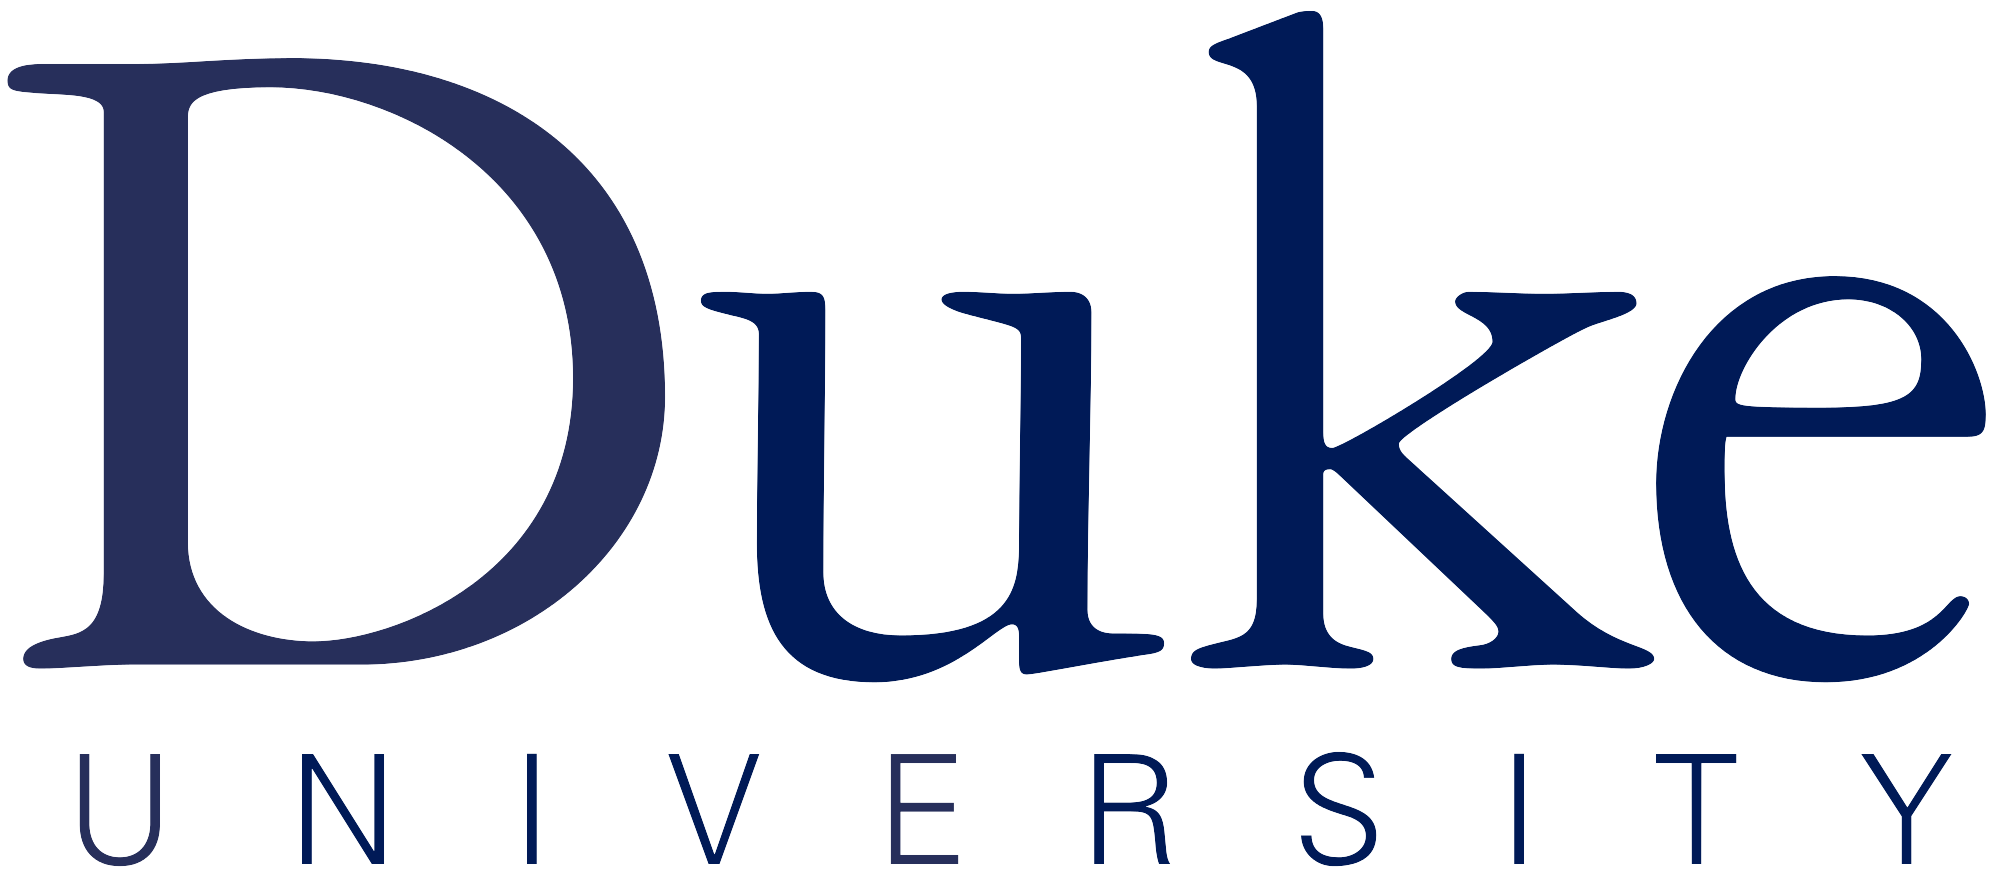 literature Duke university logo